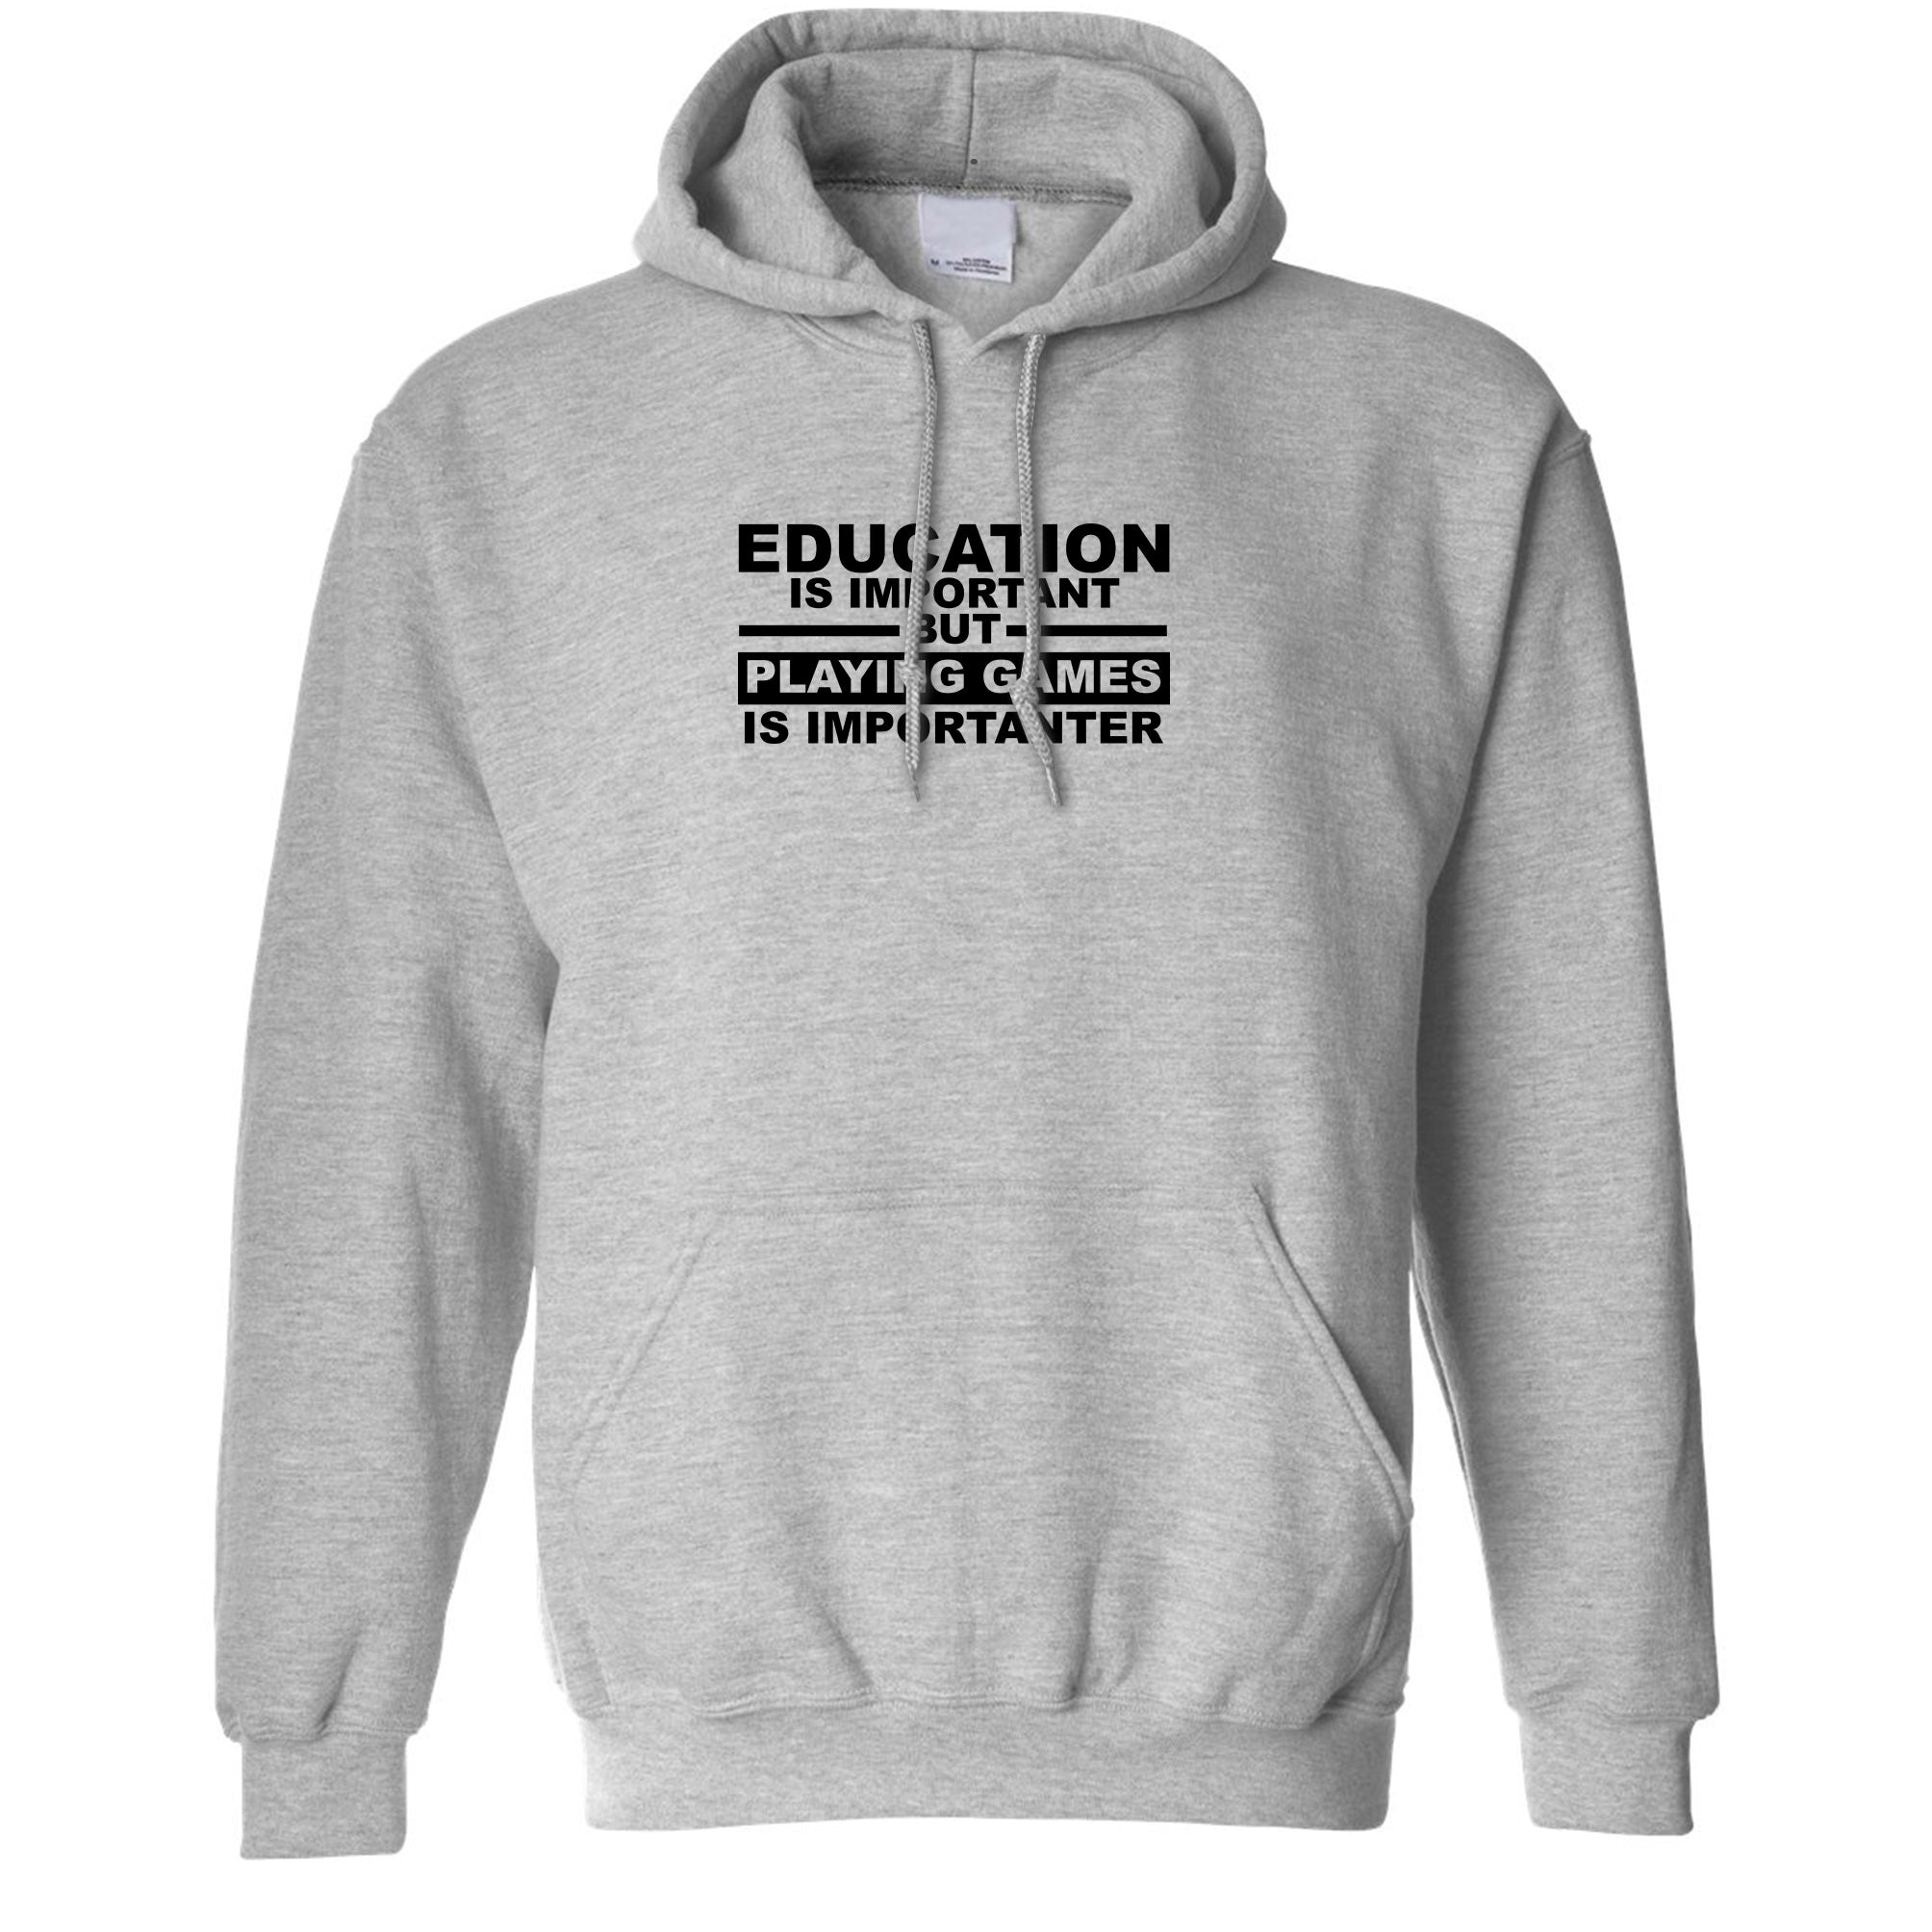 Education Hoodie Playing Games is Importanter Hooded Jumper